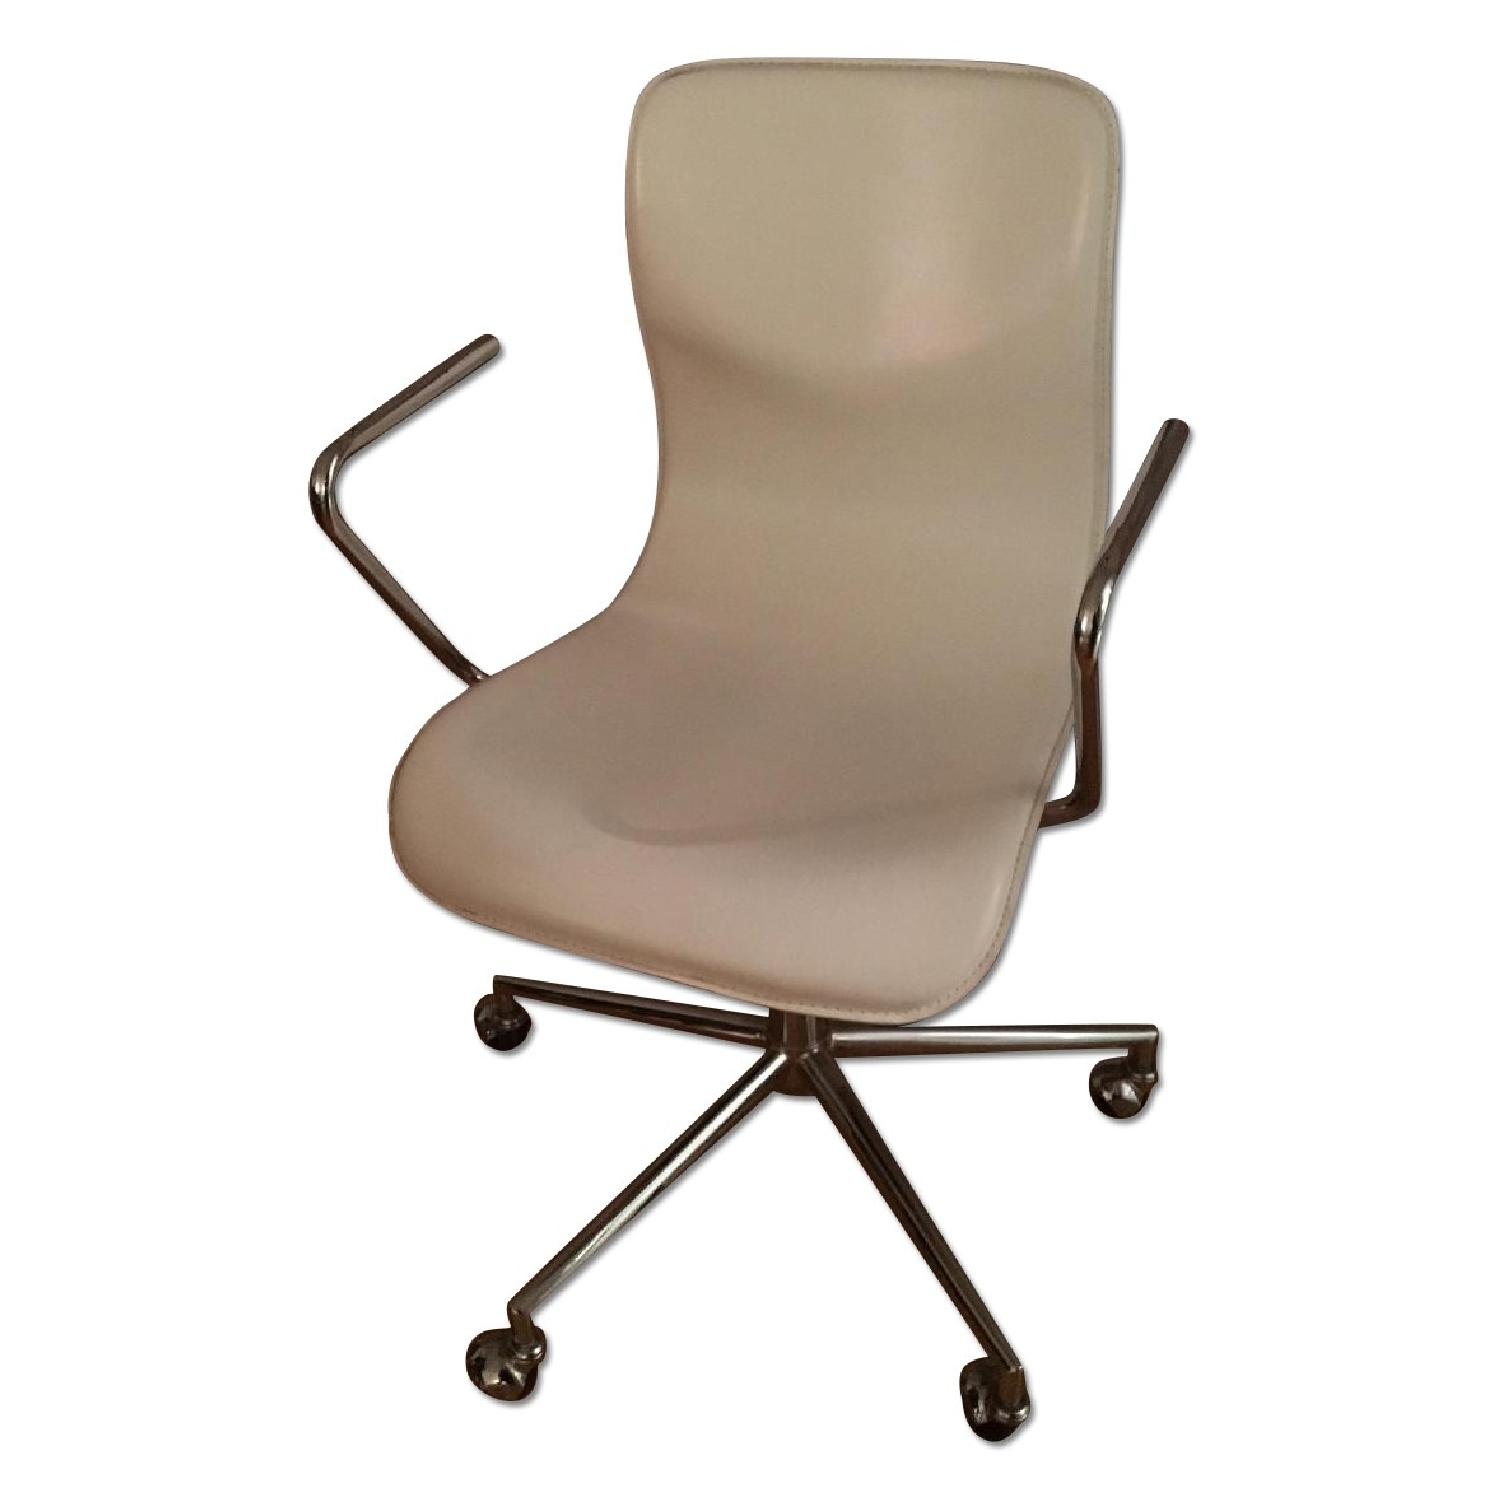 CB2 Form White Office Chair w/ Arm Rest - image-0